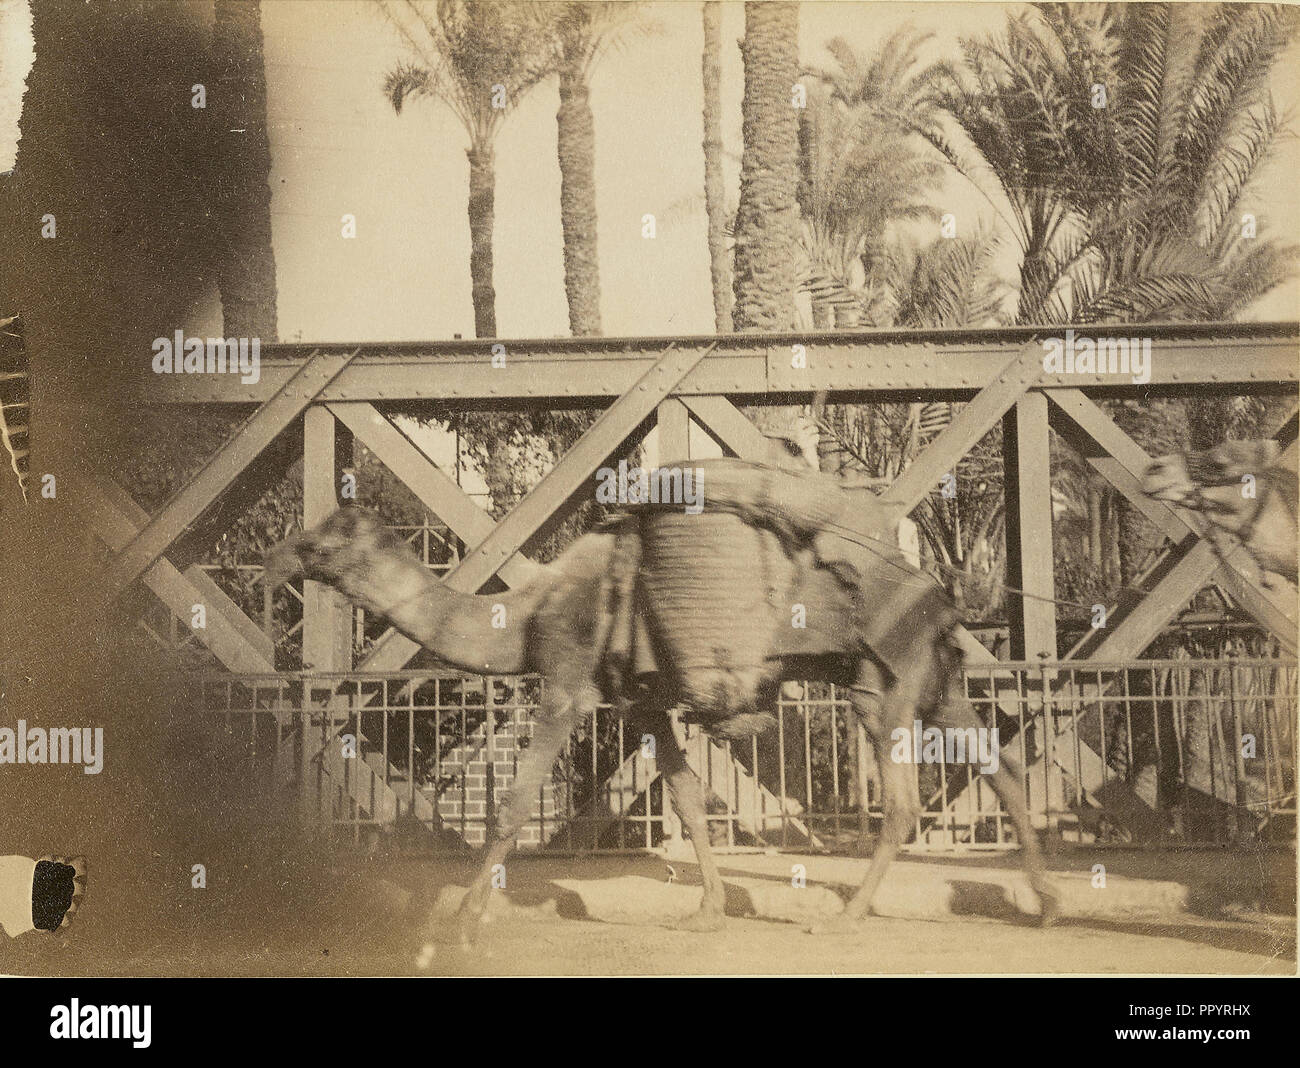 Camels; about 1860 - 1880; Tinted Albumen silver print - Stock Image